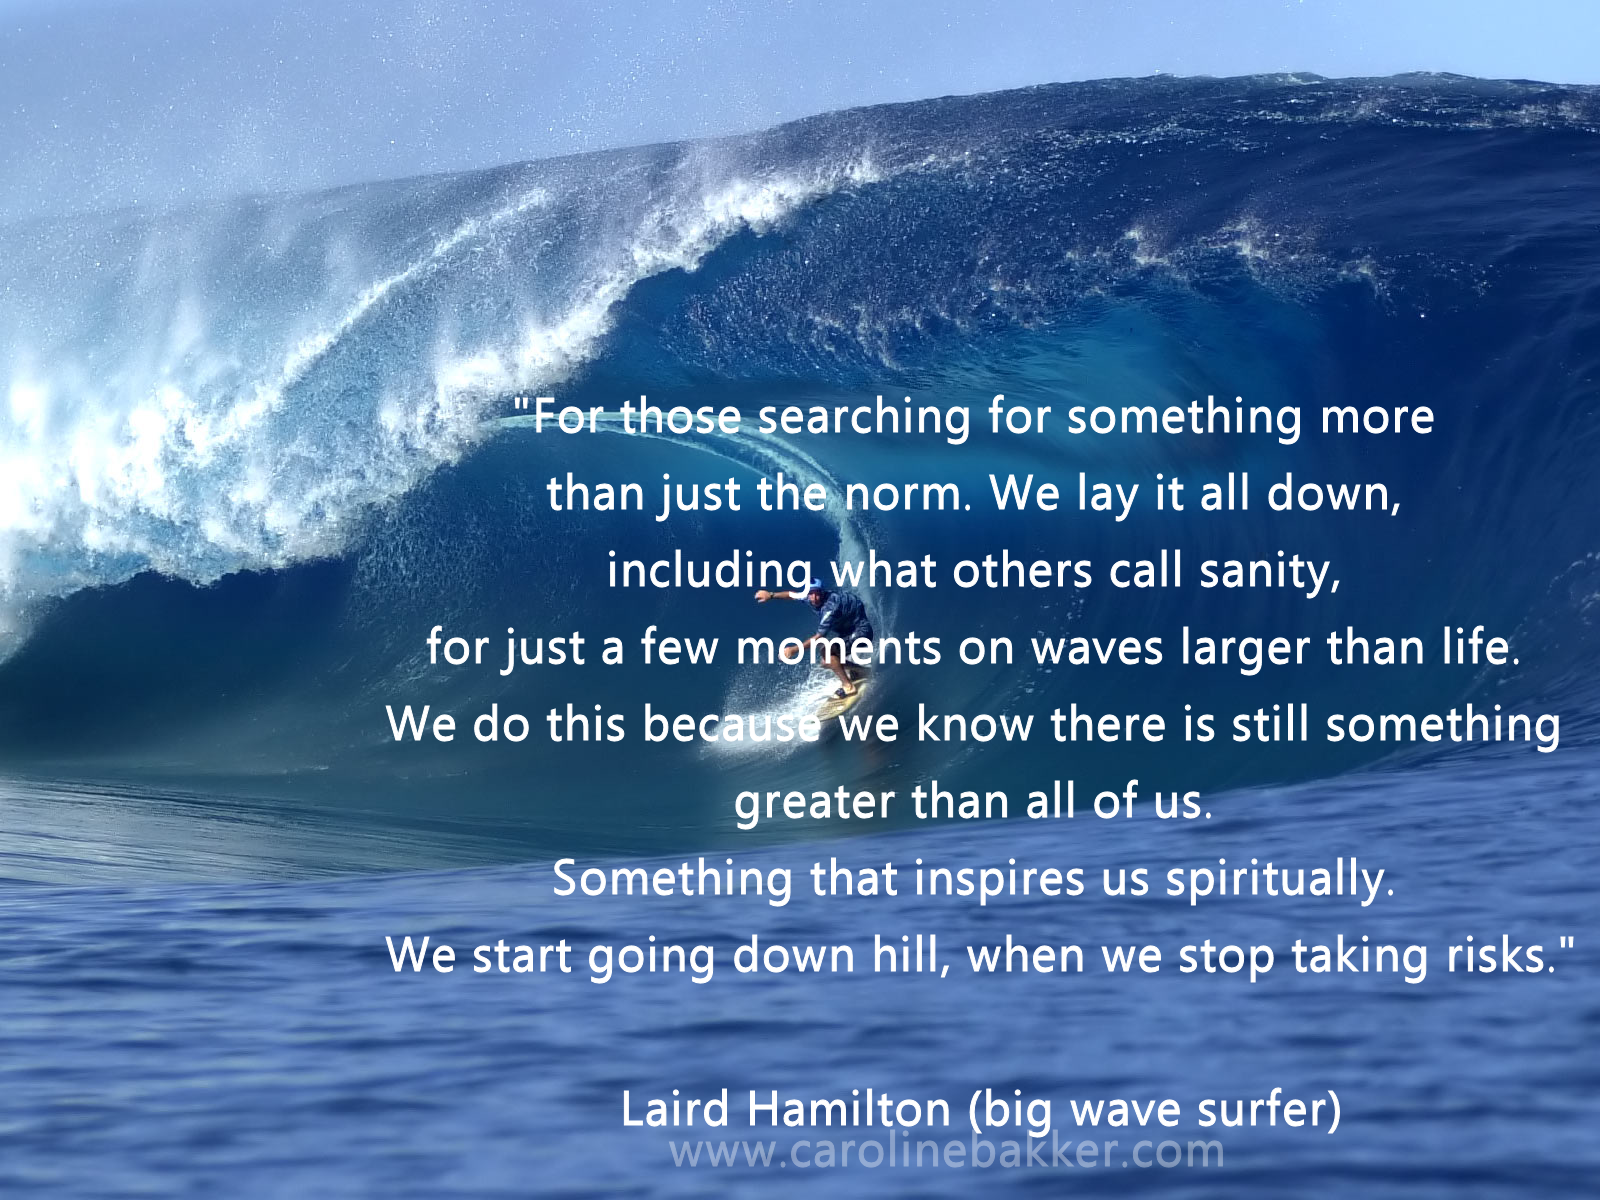 Quotes About Life: Surfing Quotes About Life. QuotesGram